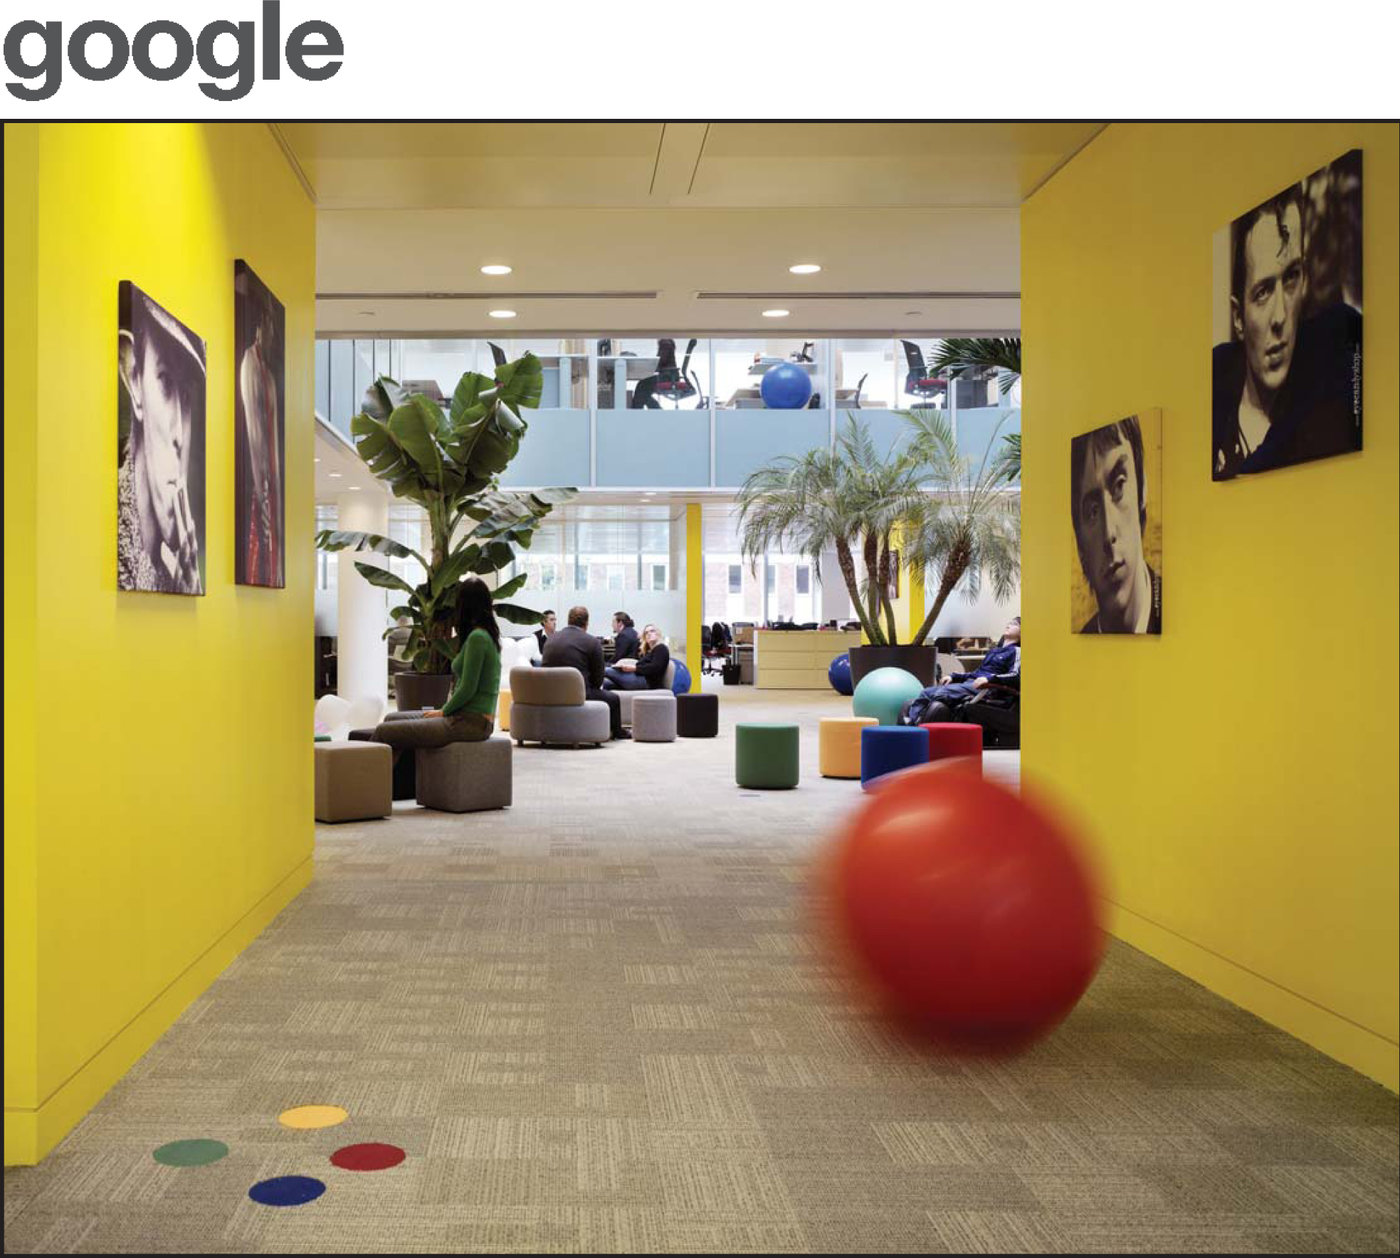 Google Uk By Lauren Farquhar At Coroflot Com